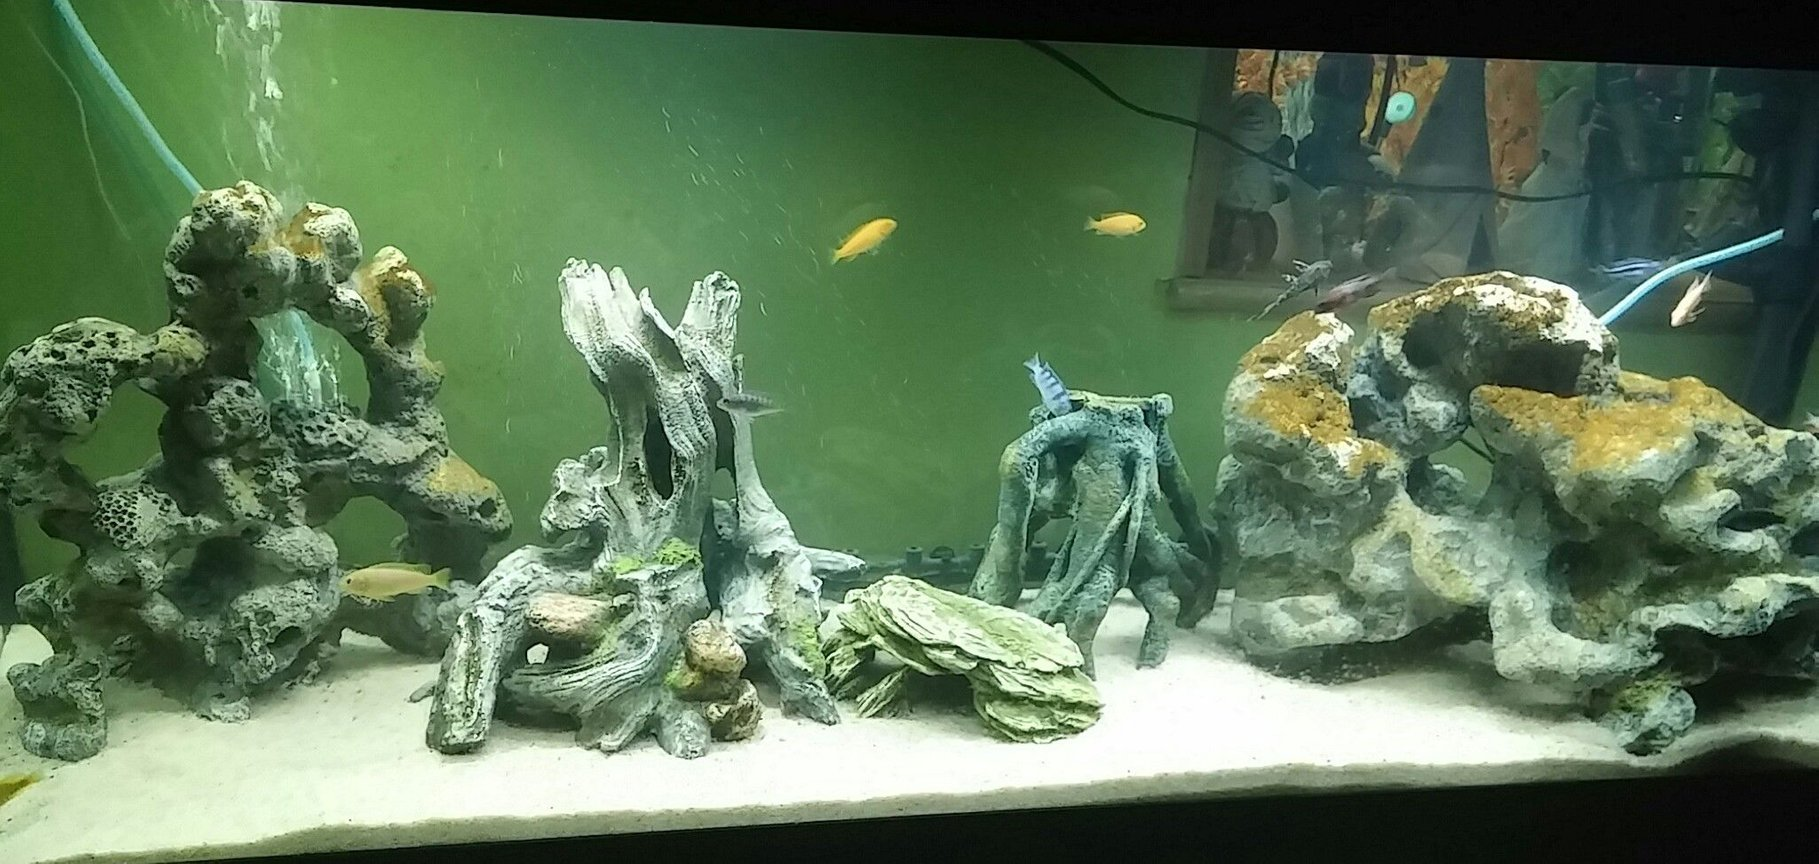 150 gallons freshwater fish tank (mostly fish and non-living decorations) - 55 gallon cichlid tank